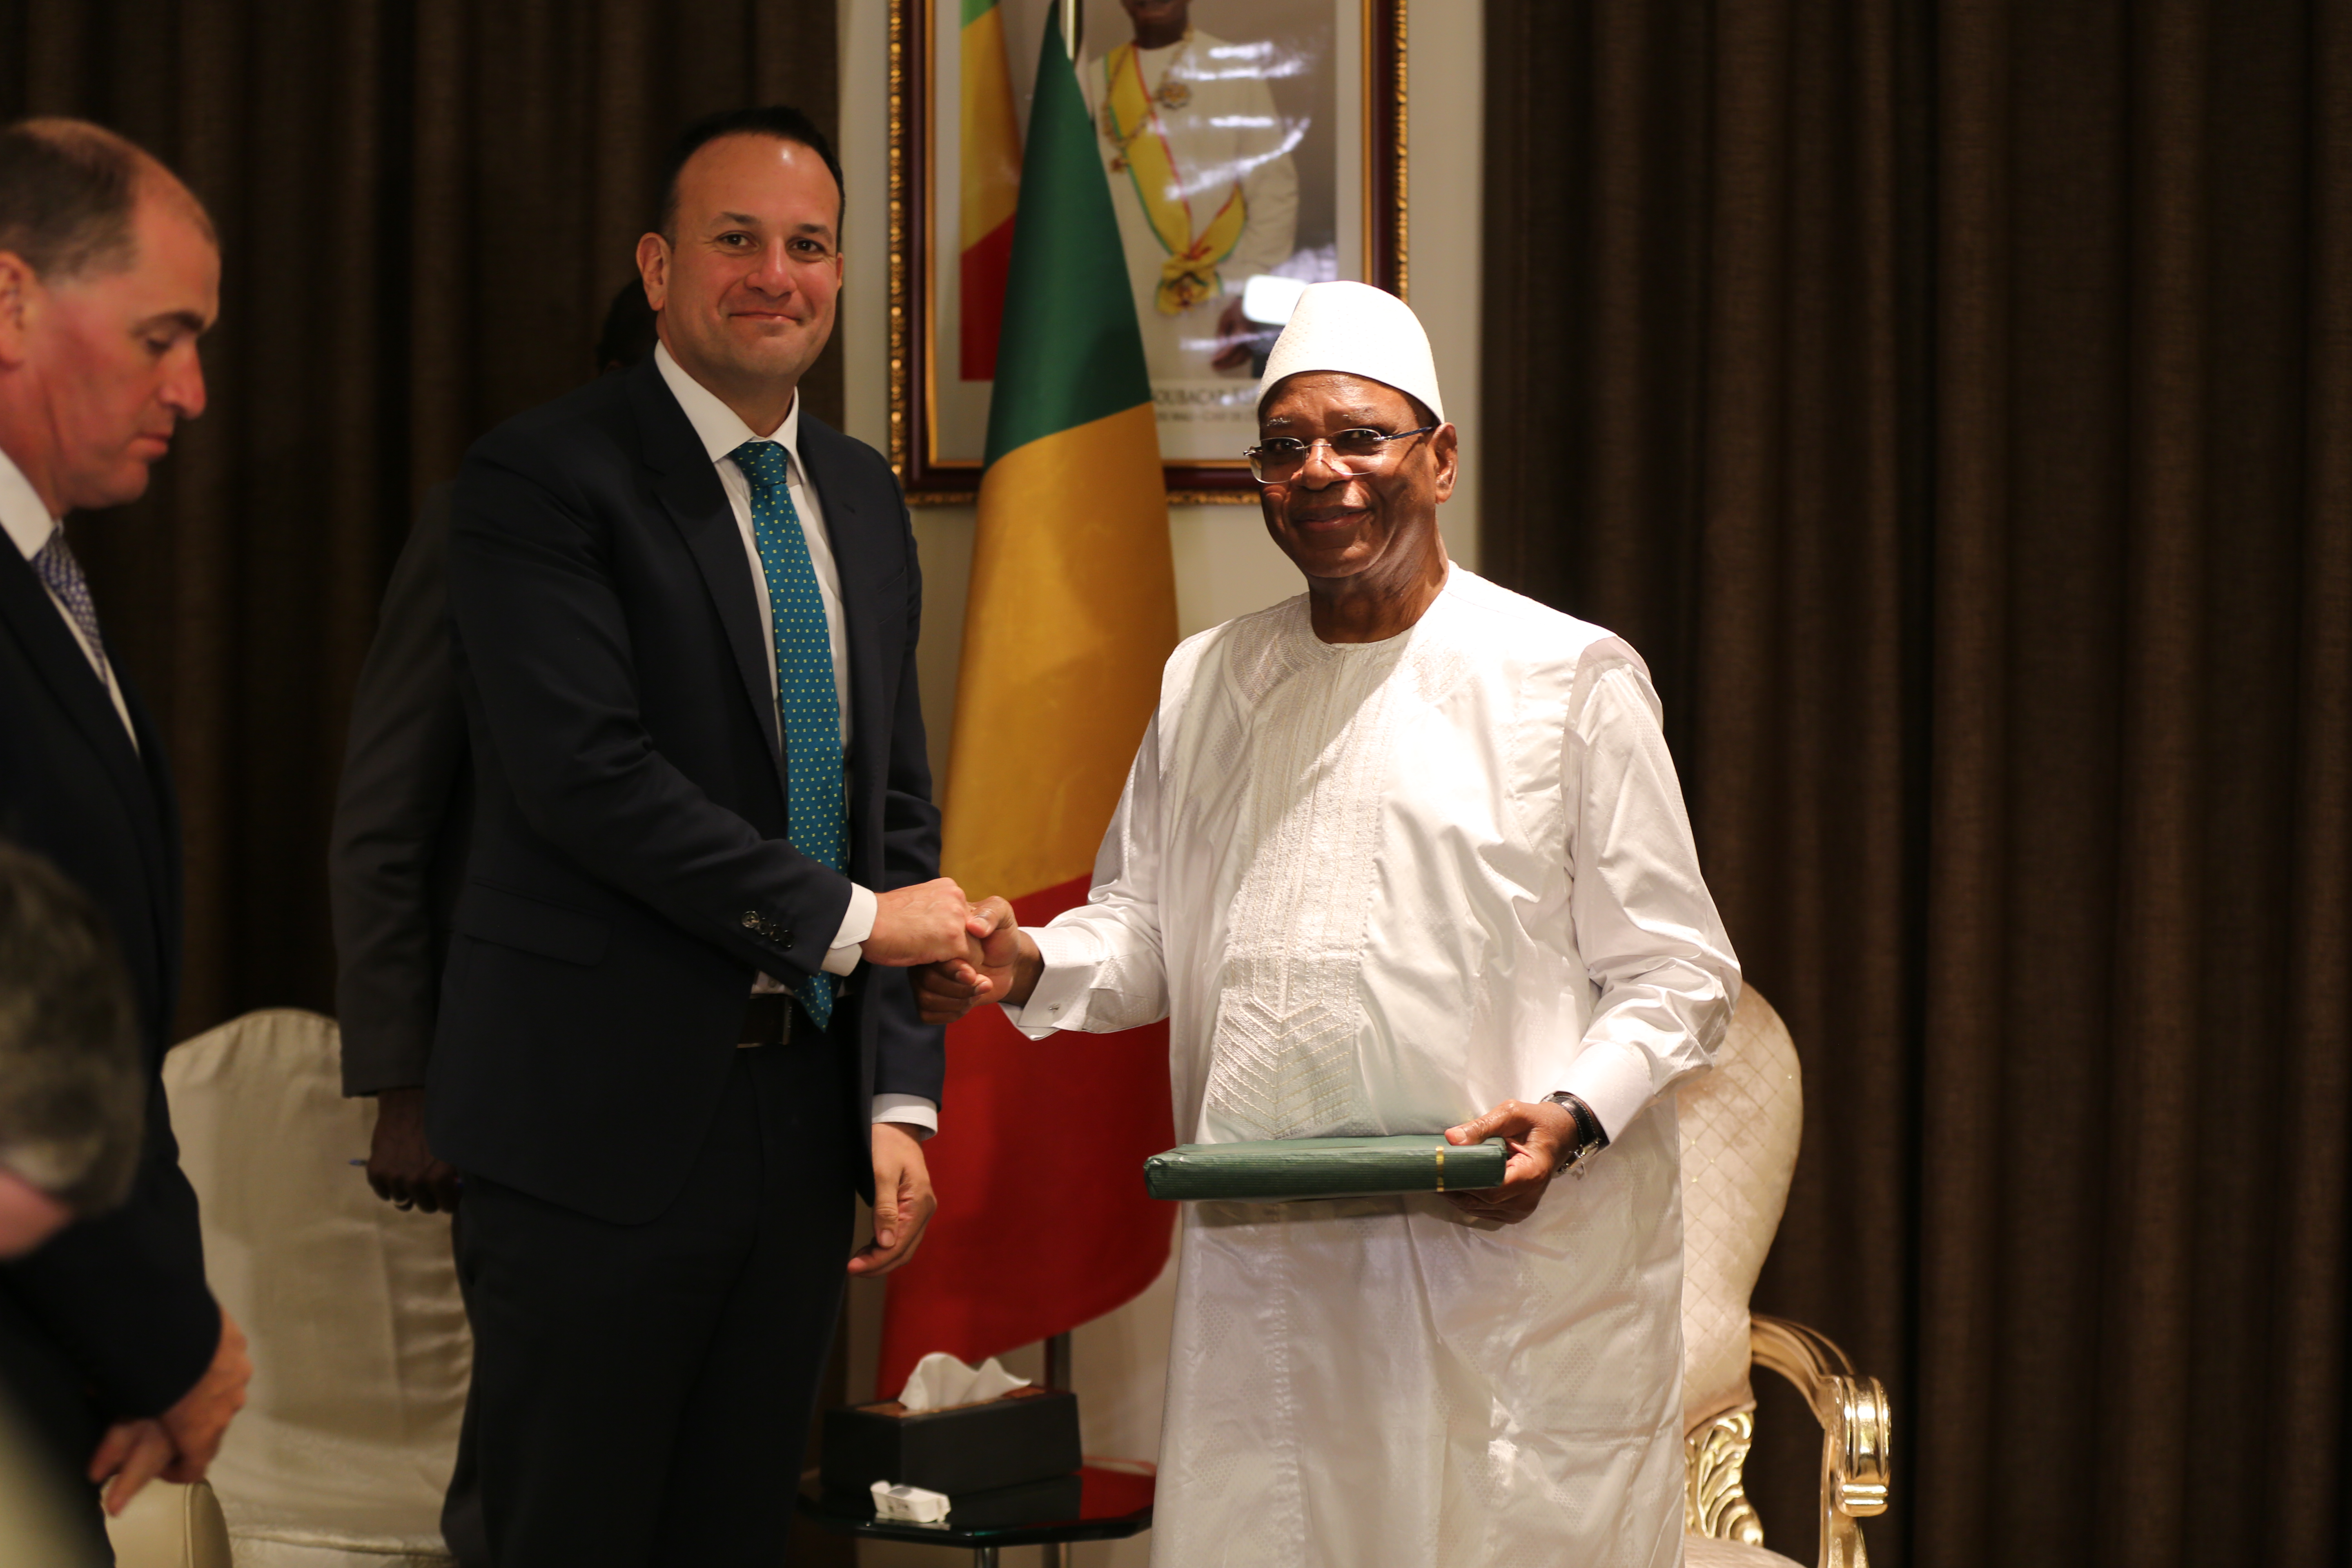 An Taoiseach meeting the President of Mali